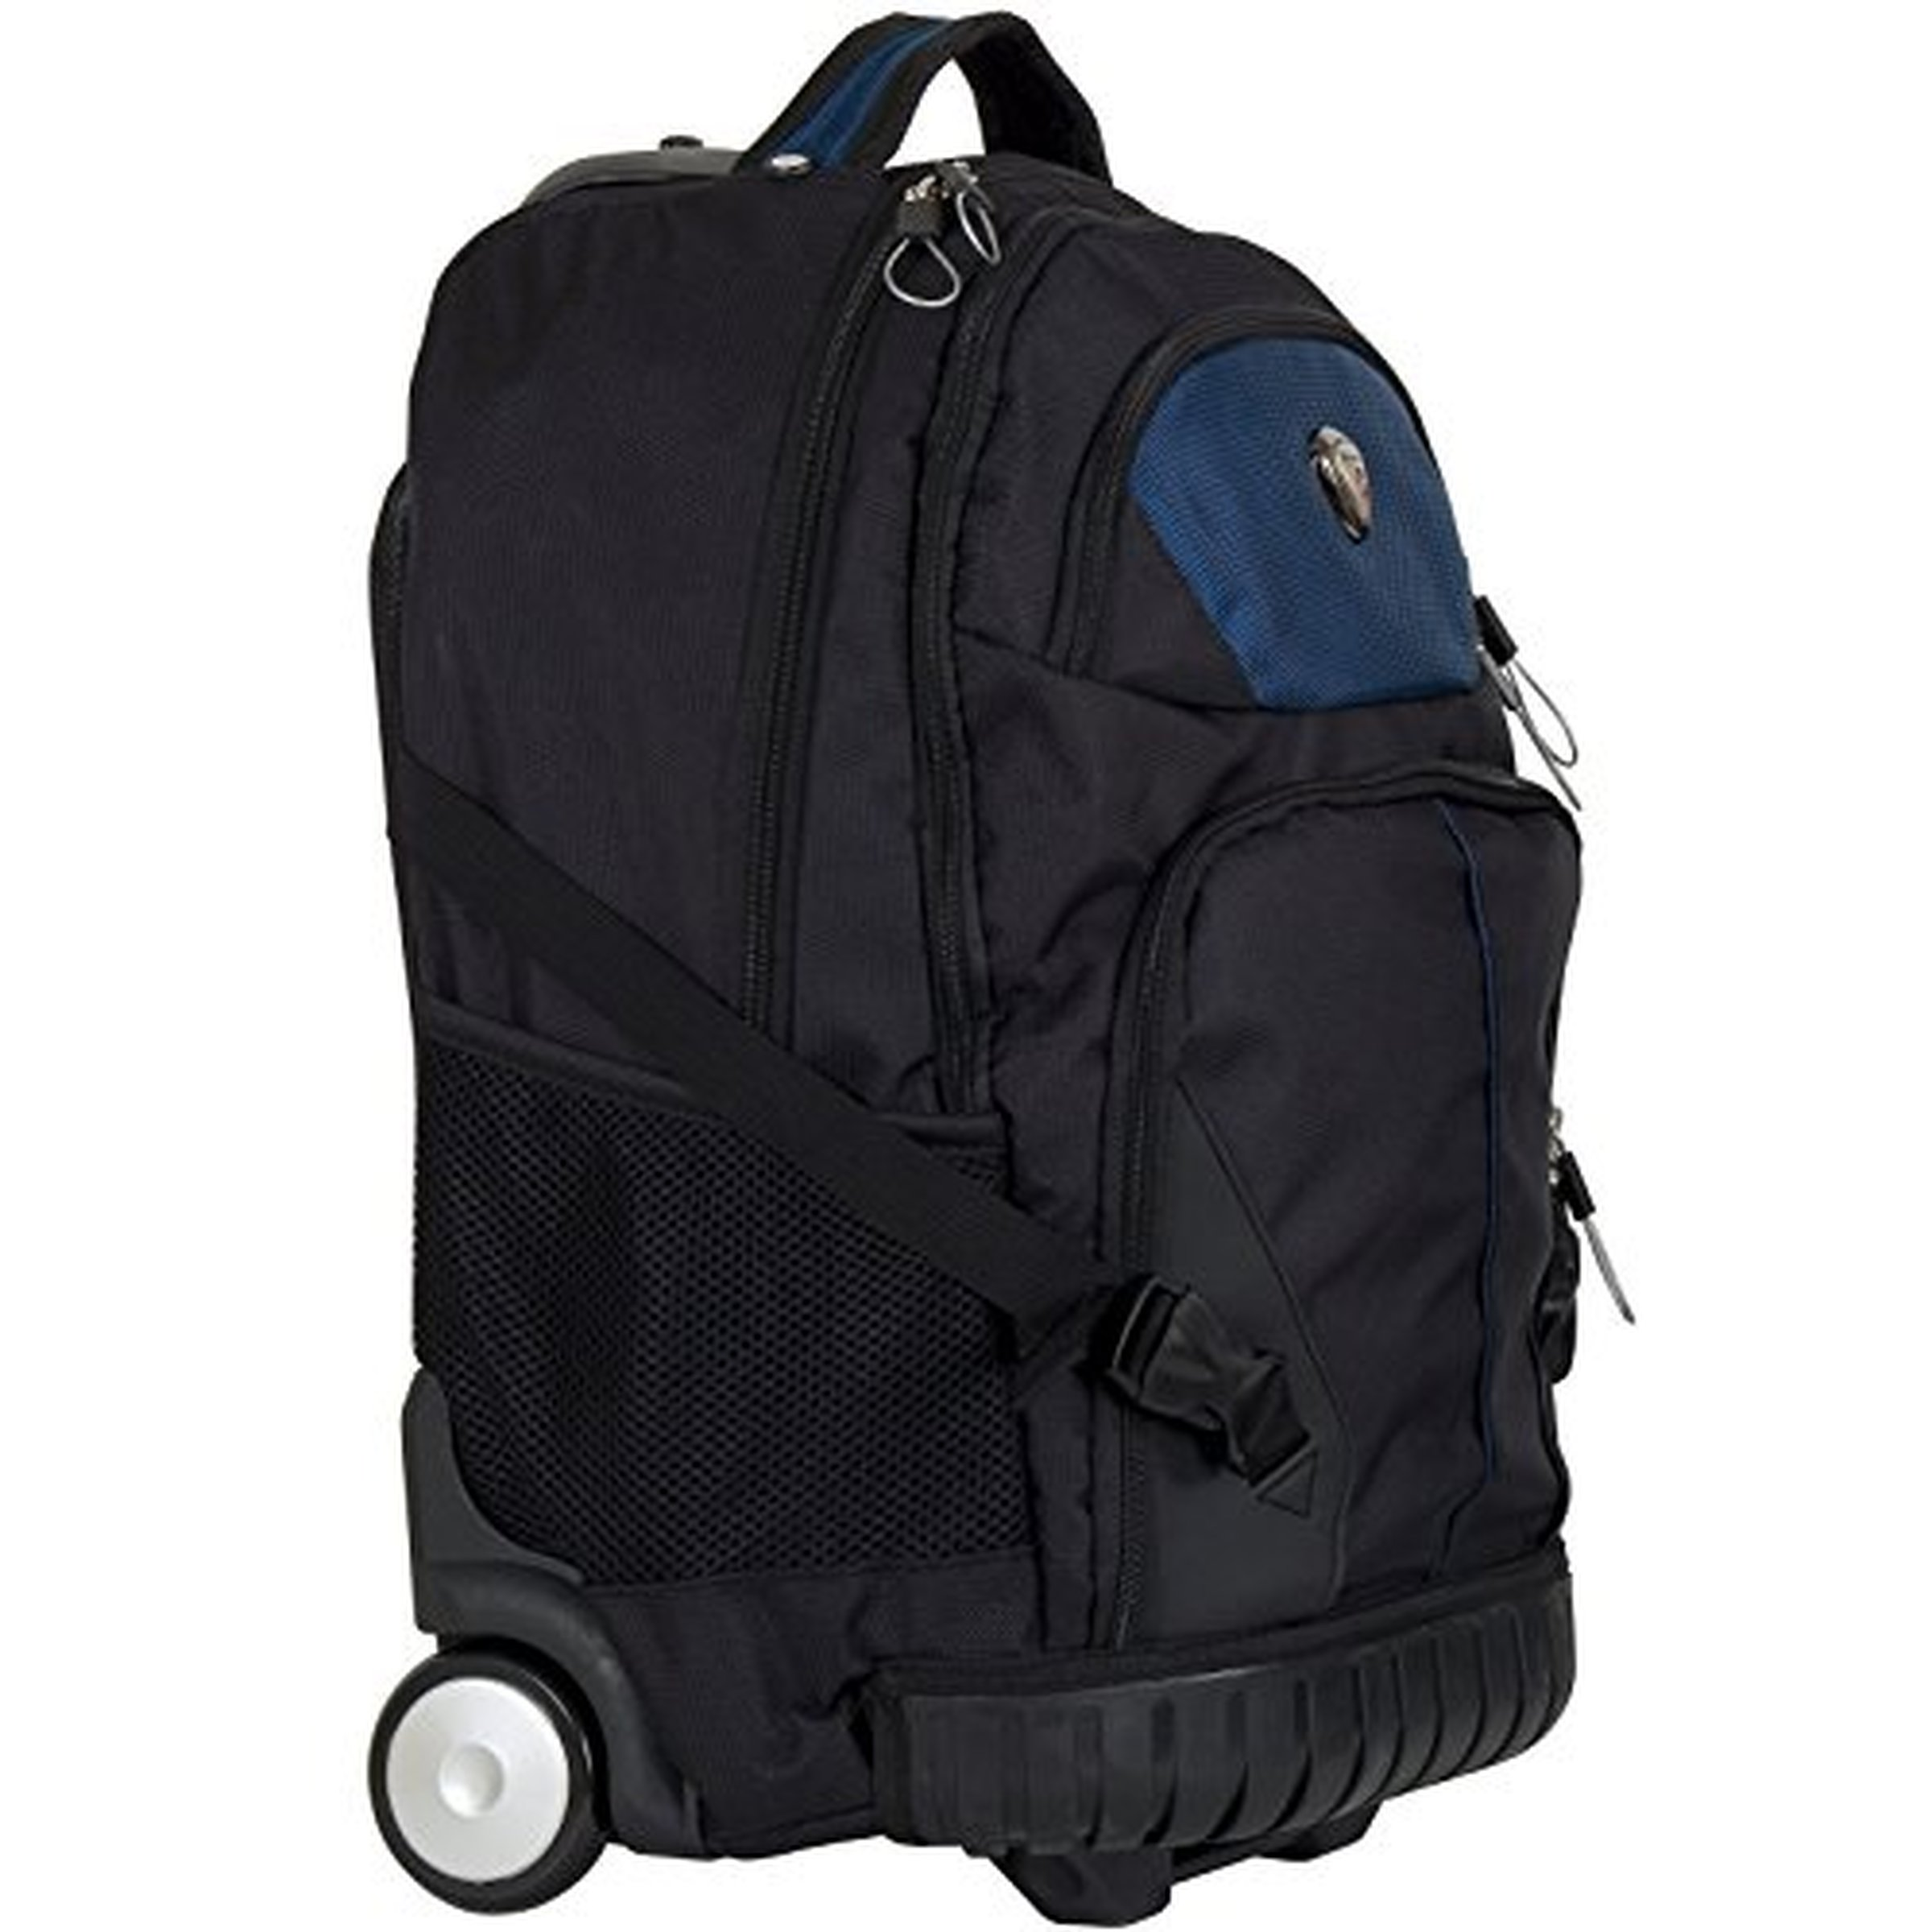 19 Inch Laptop Backpack 6gX3mKxj